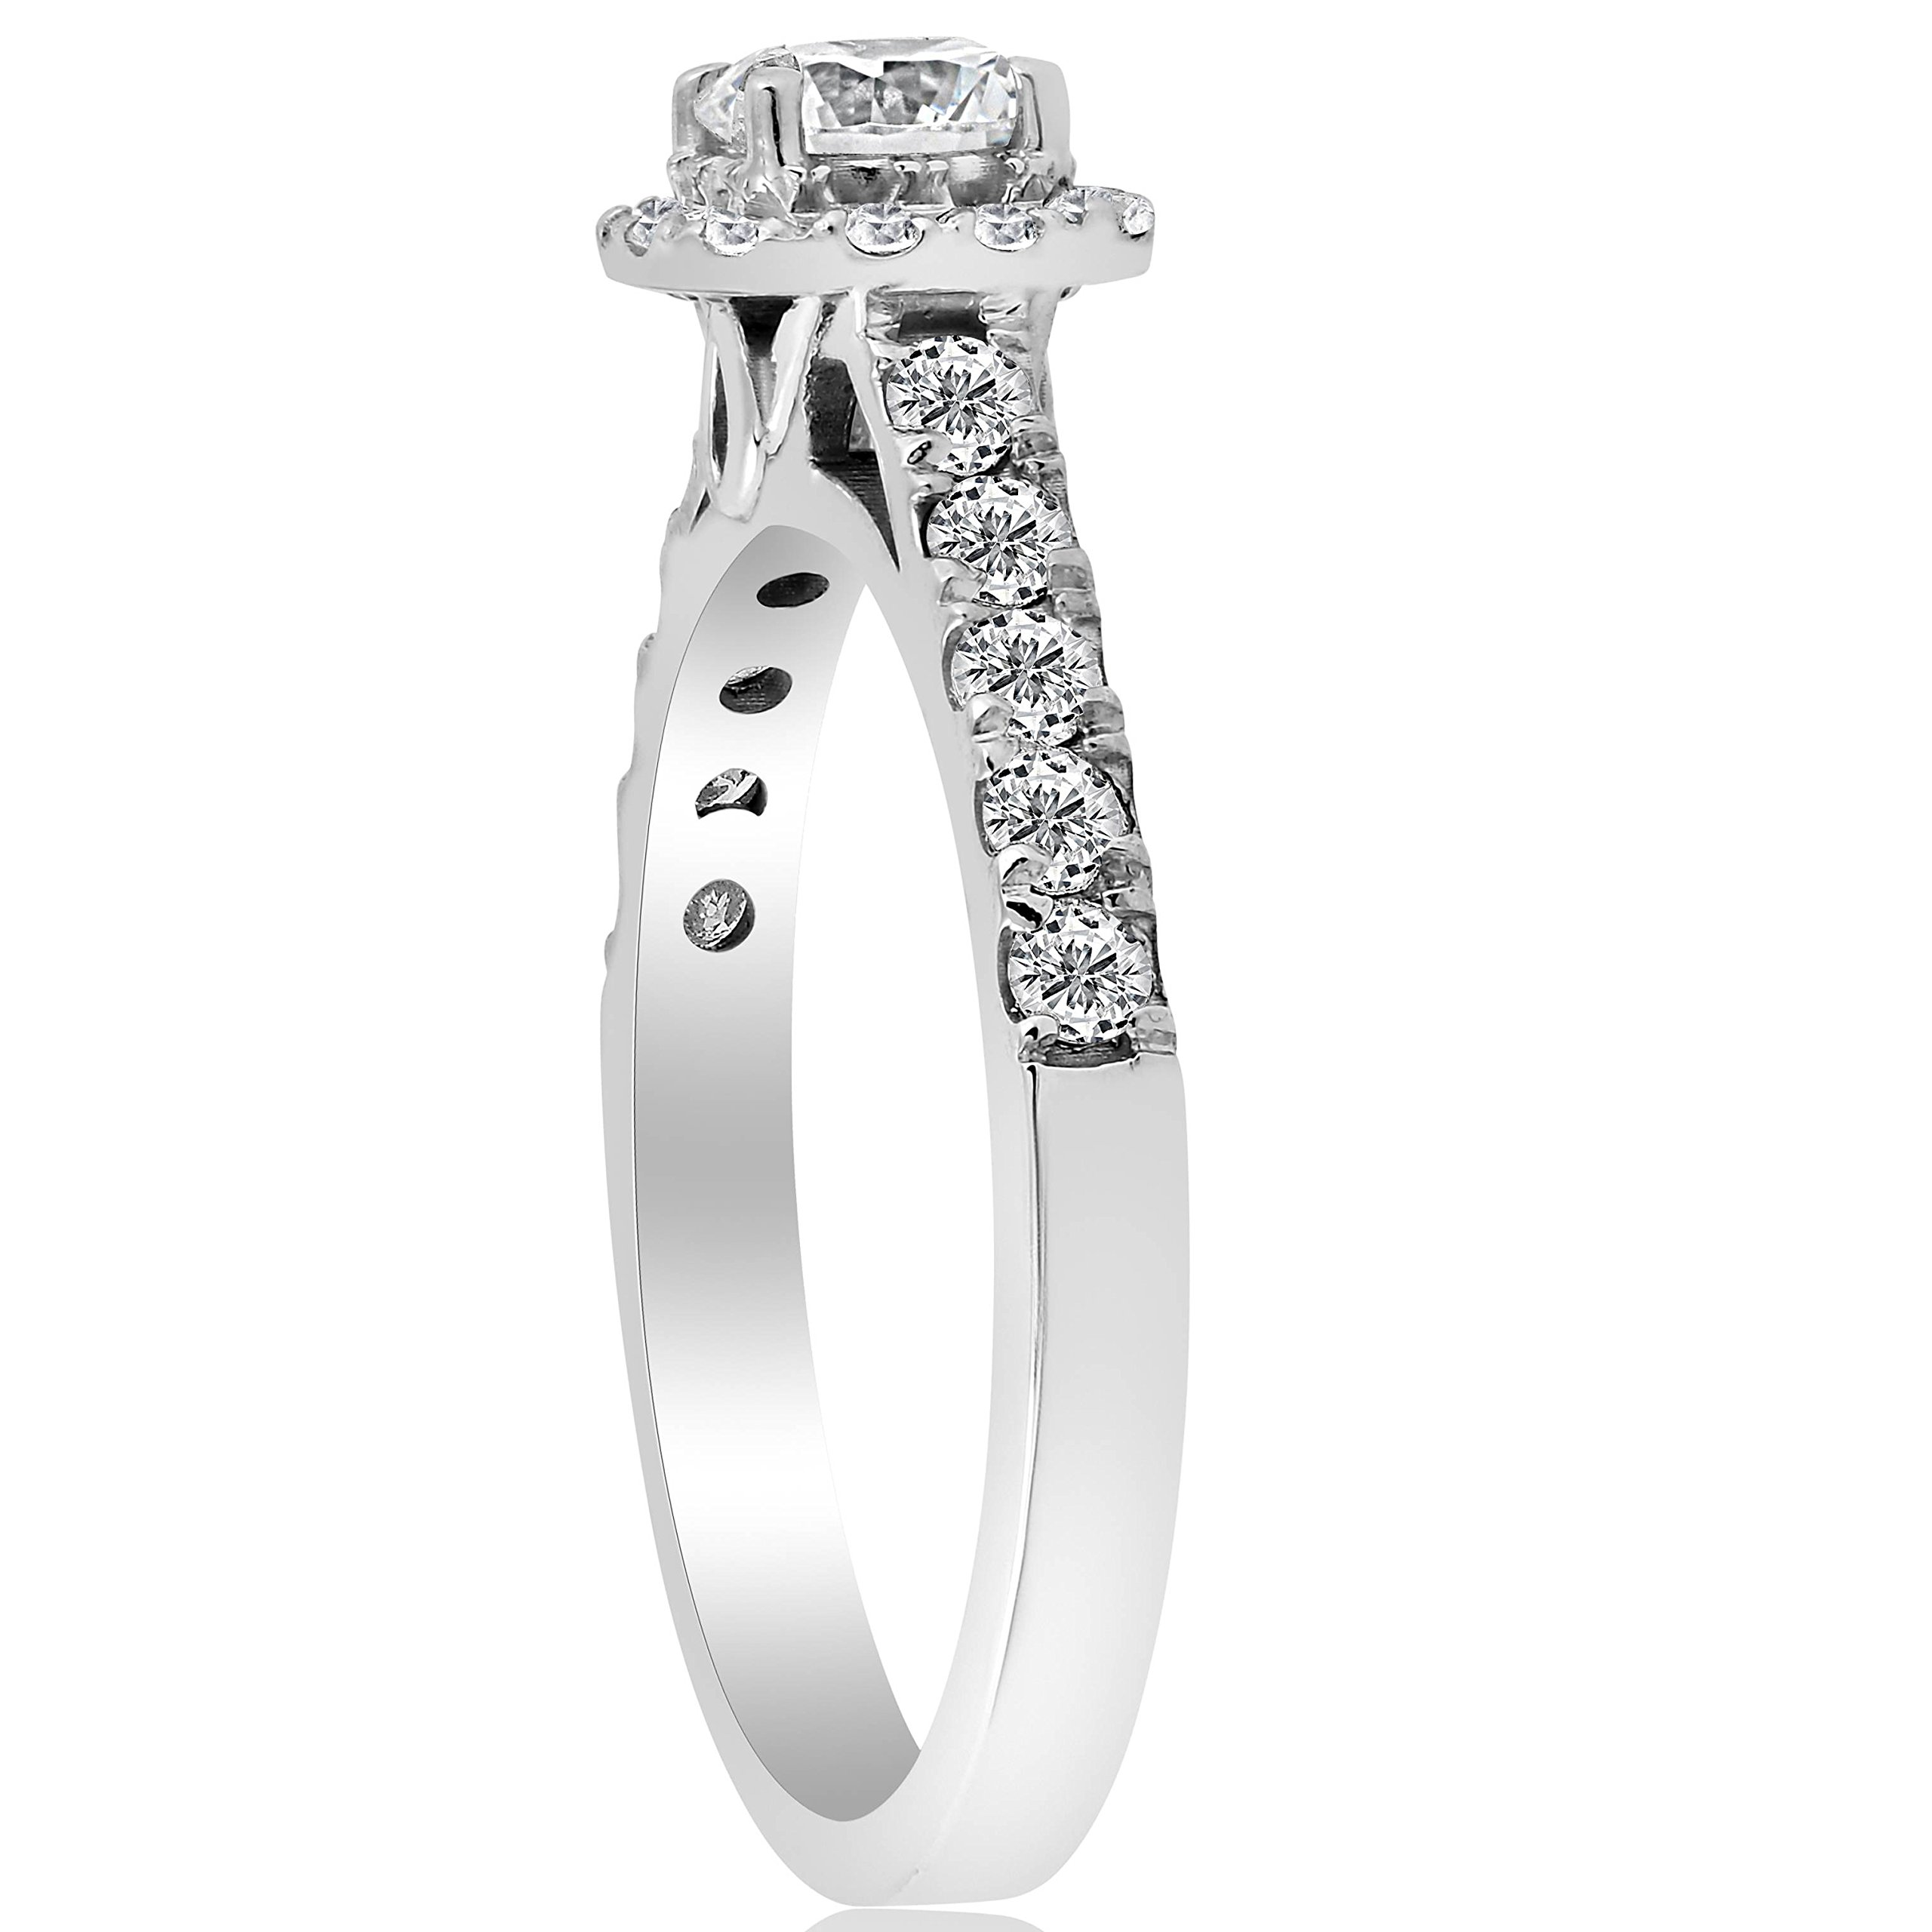 1ct Cushion Halo Diamond Engagement Ring 14K White Gold - Size 4 by P3 POMPEII3 (Image #3)